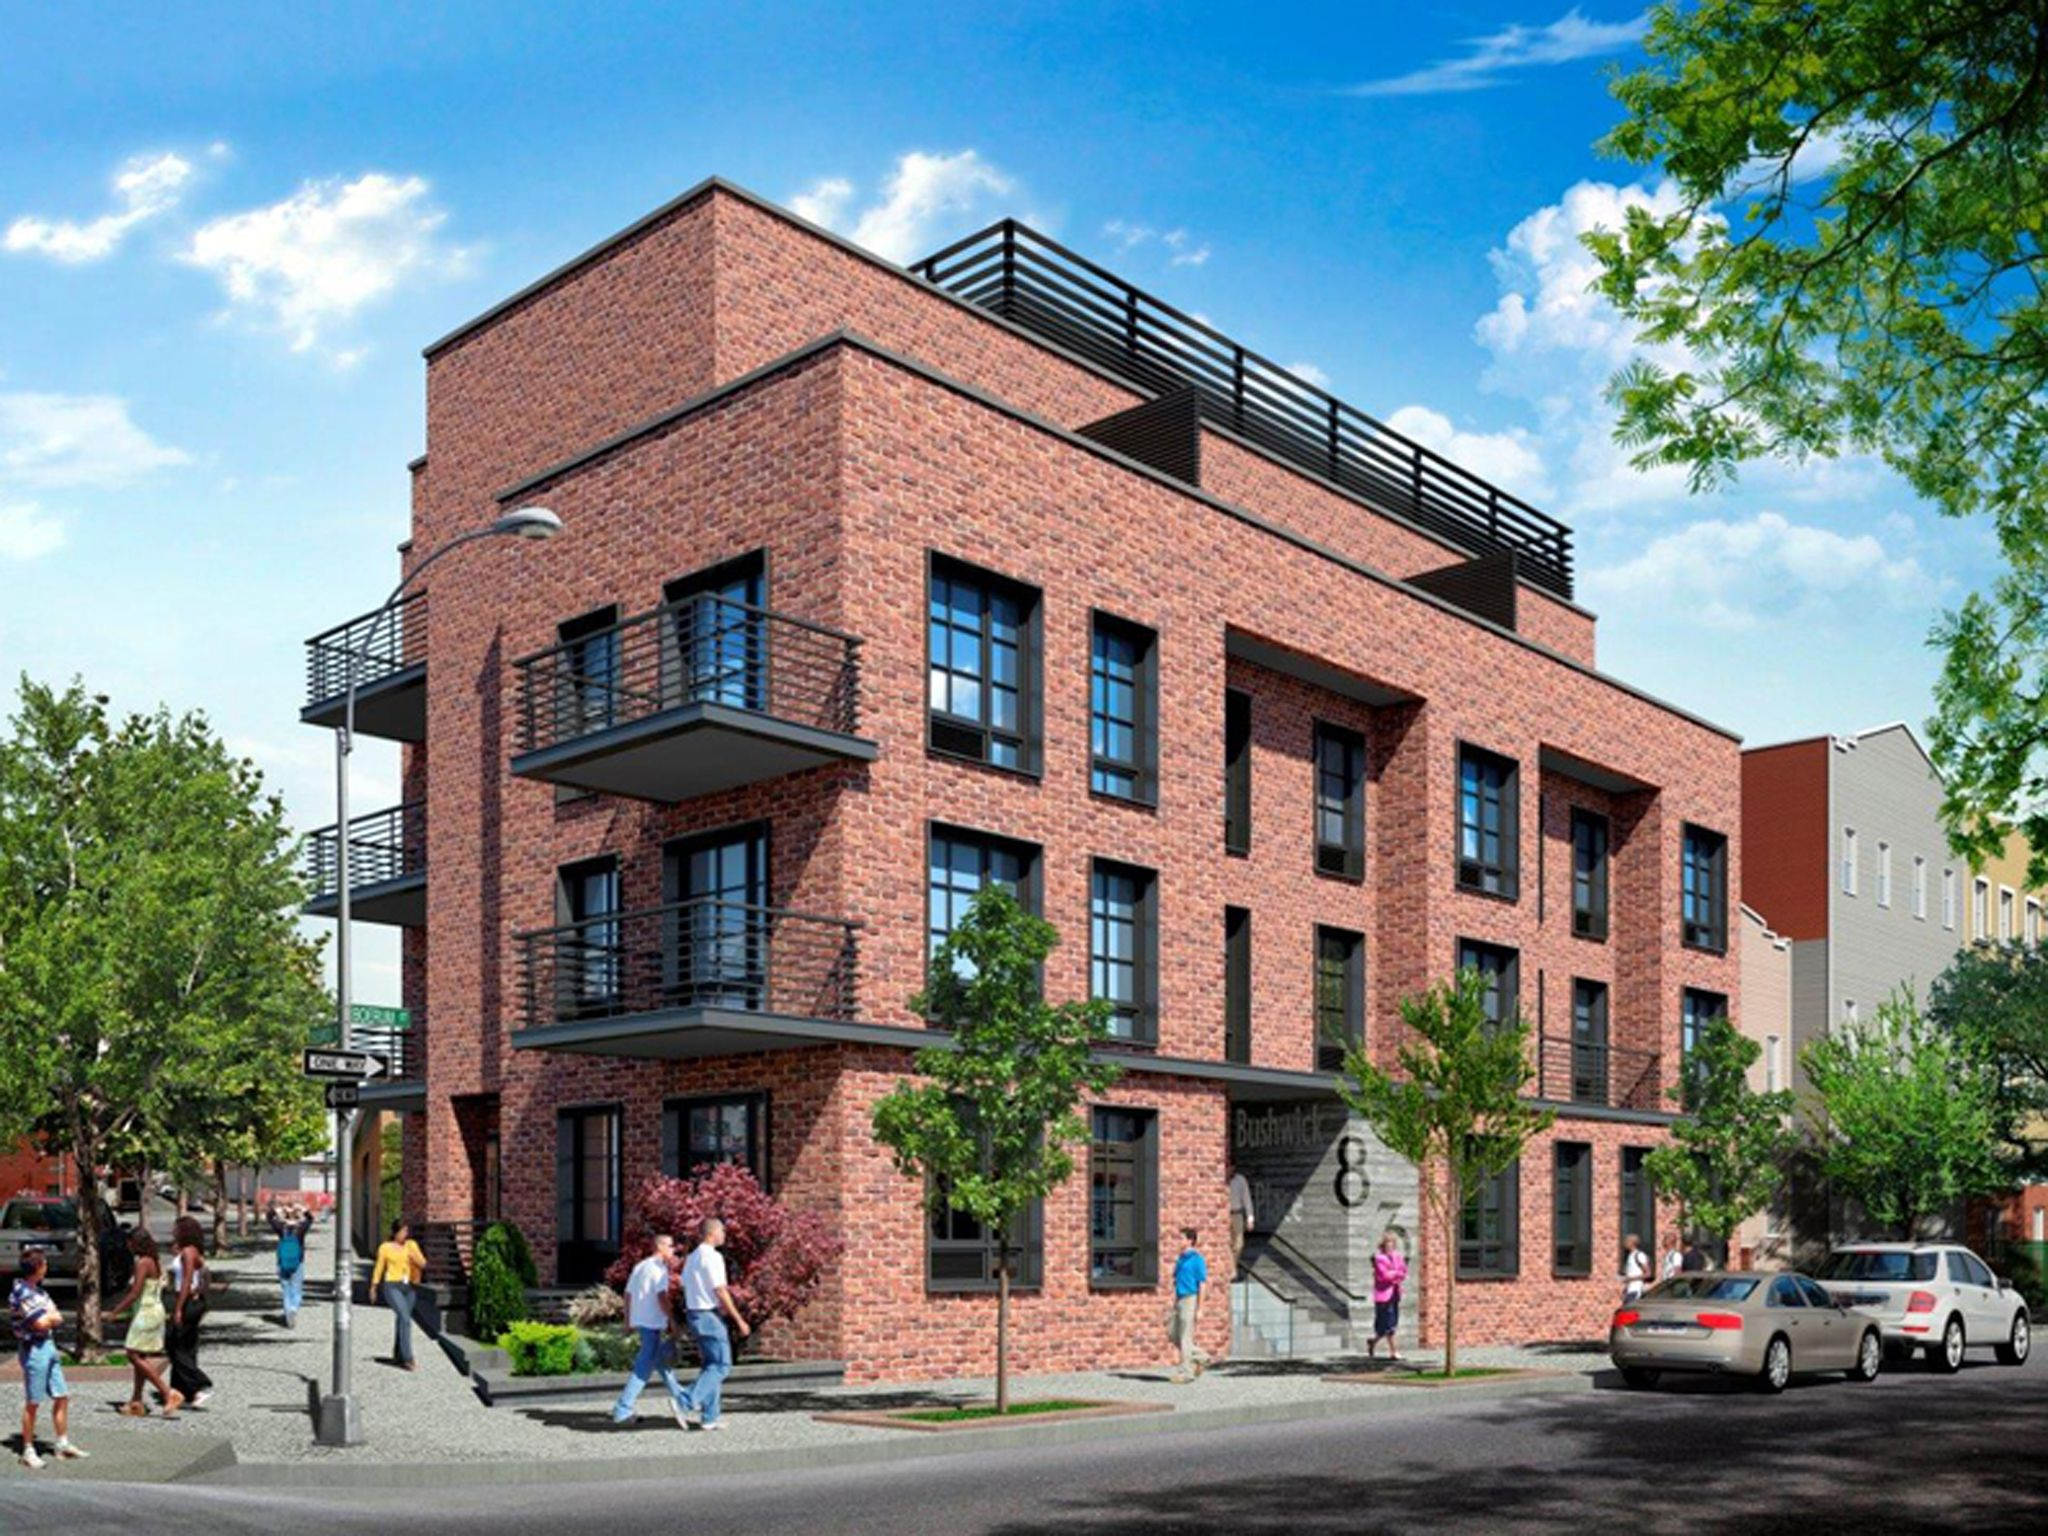 Lotto kicks off for four affordable apartments in bushwick for Affordable building